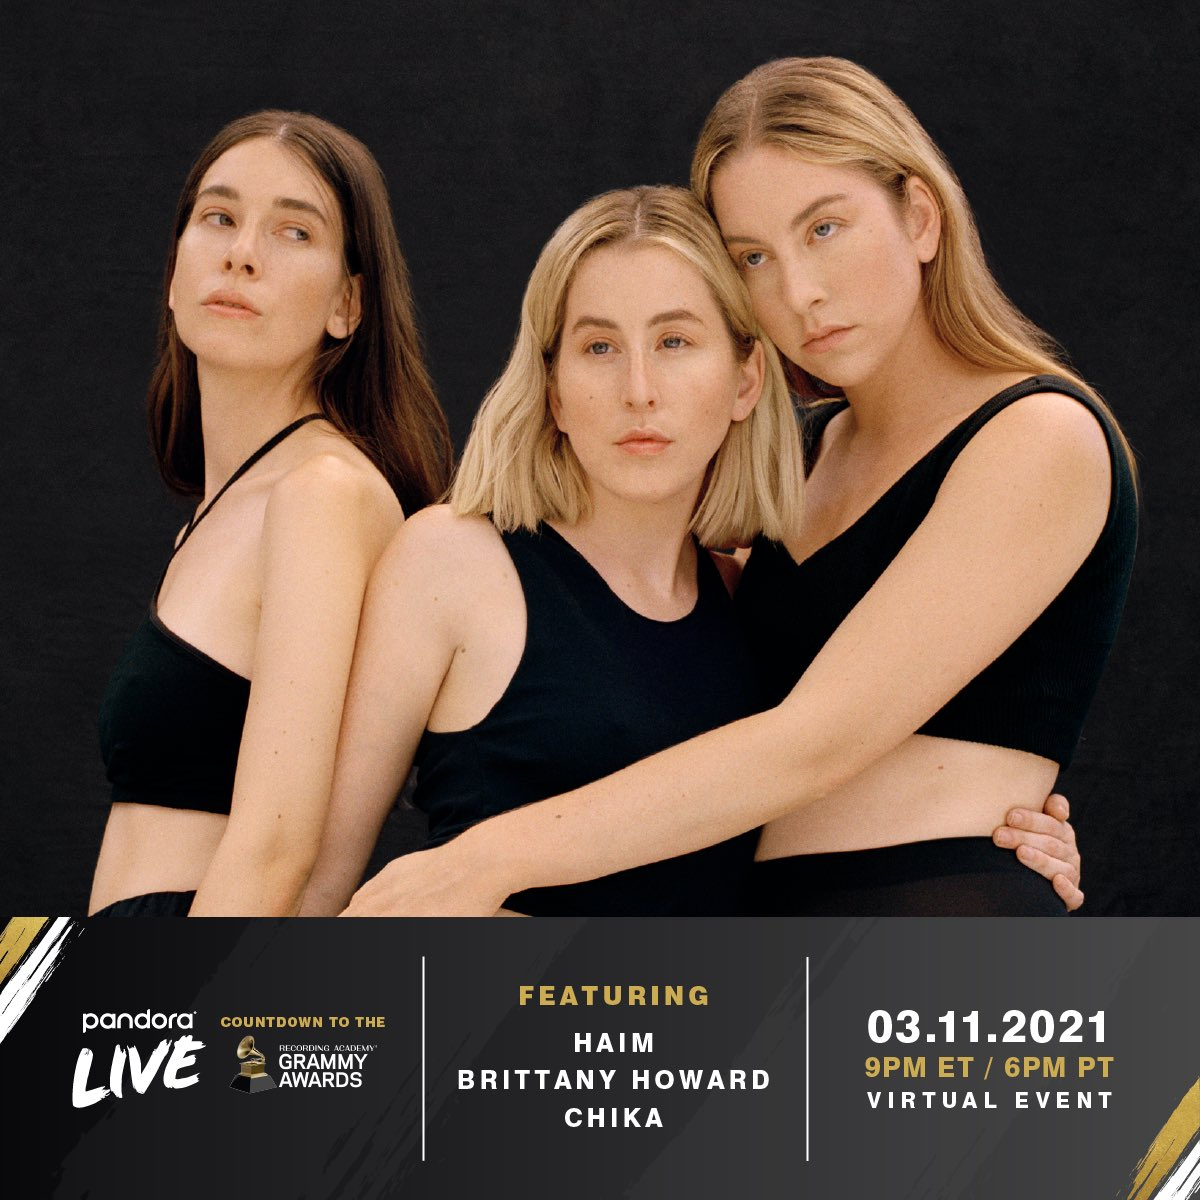 we're performing at the @pandoramusic @RecordingAcad event celebrating the #GRAMMYs on 3/11 ft @oranicuhhand@blkfootwhtfoot!! RSVP for free here:  #PandoraLive